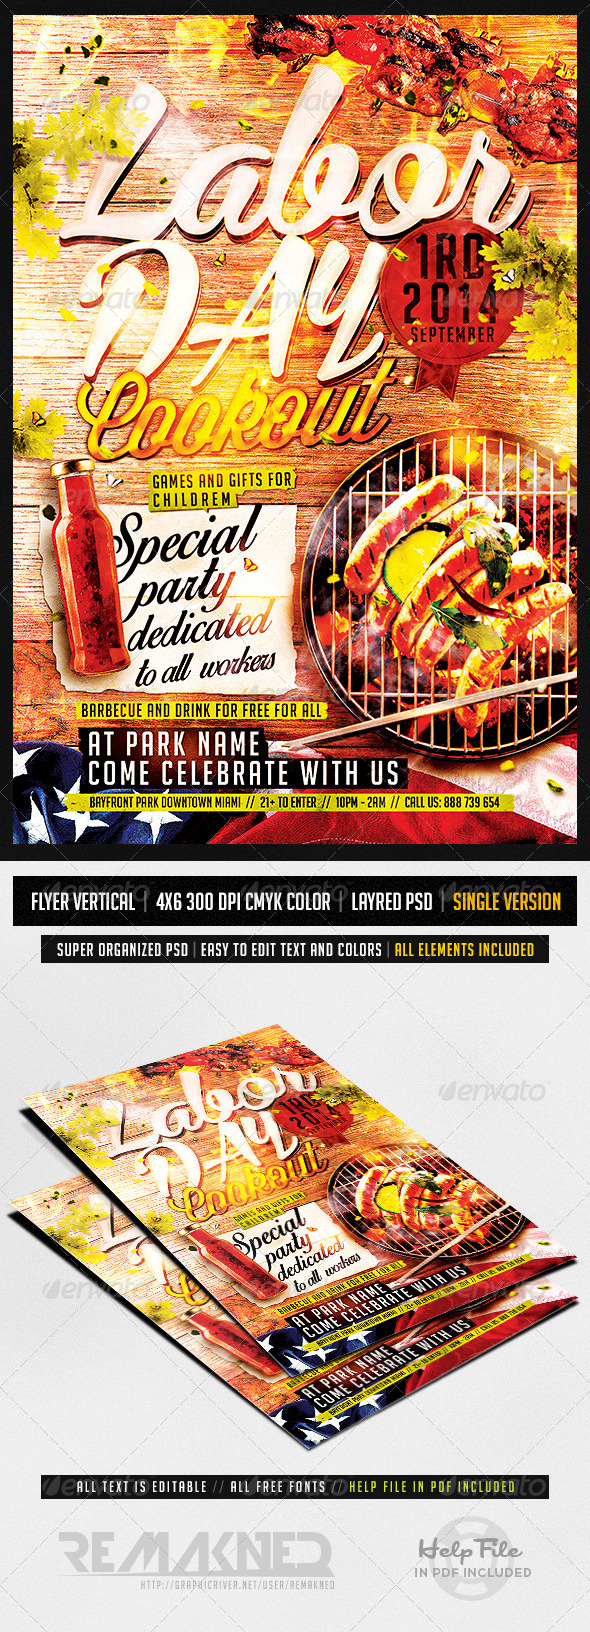 14 Cookout Flyer Template PSD Images - Cookout Flyer Template ...